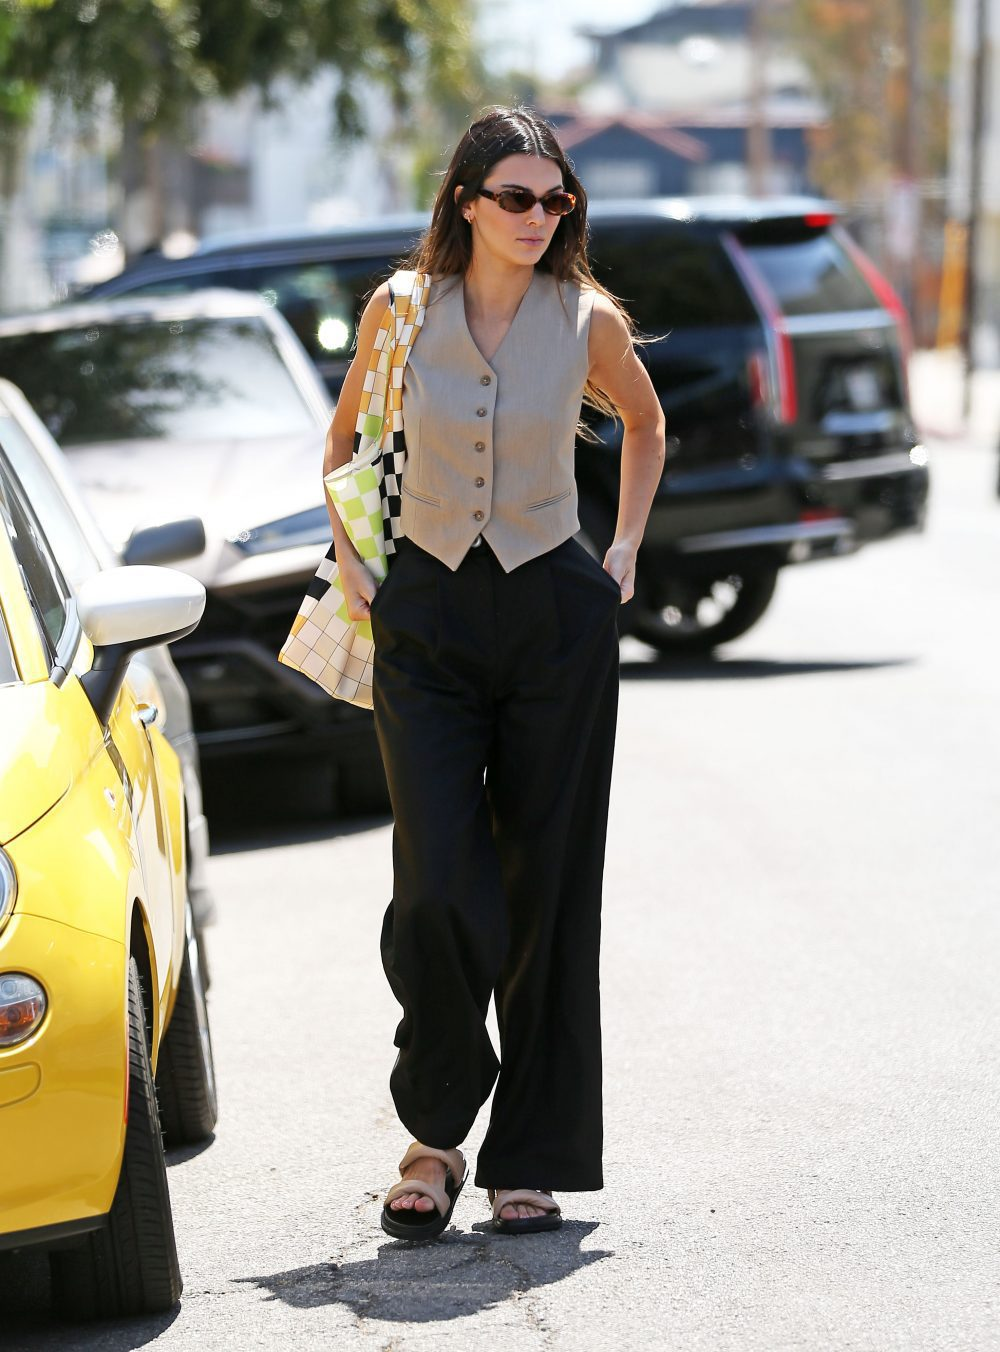 Kendall Jenner looks stunning as she runs errands in Los Angeles